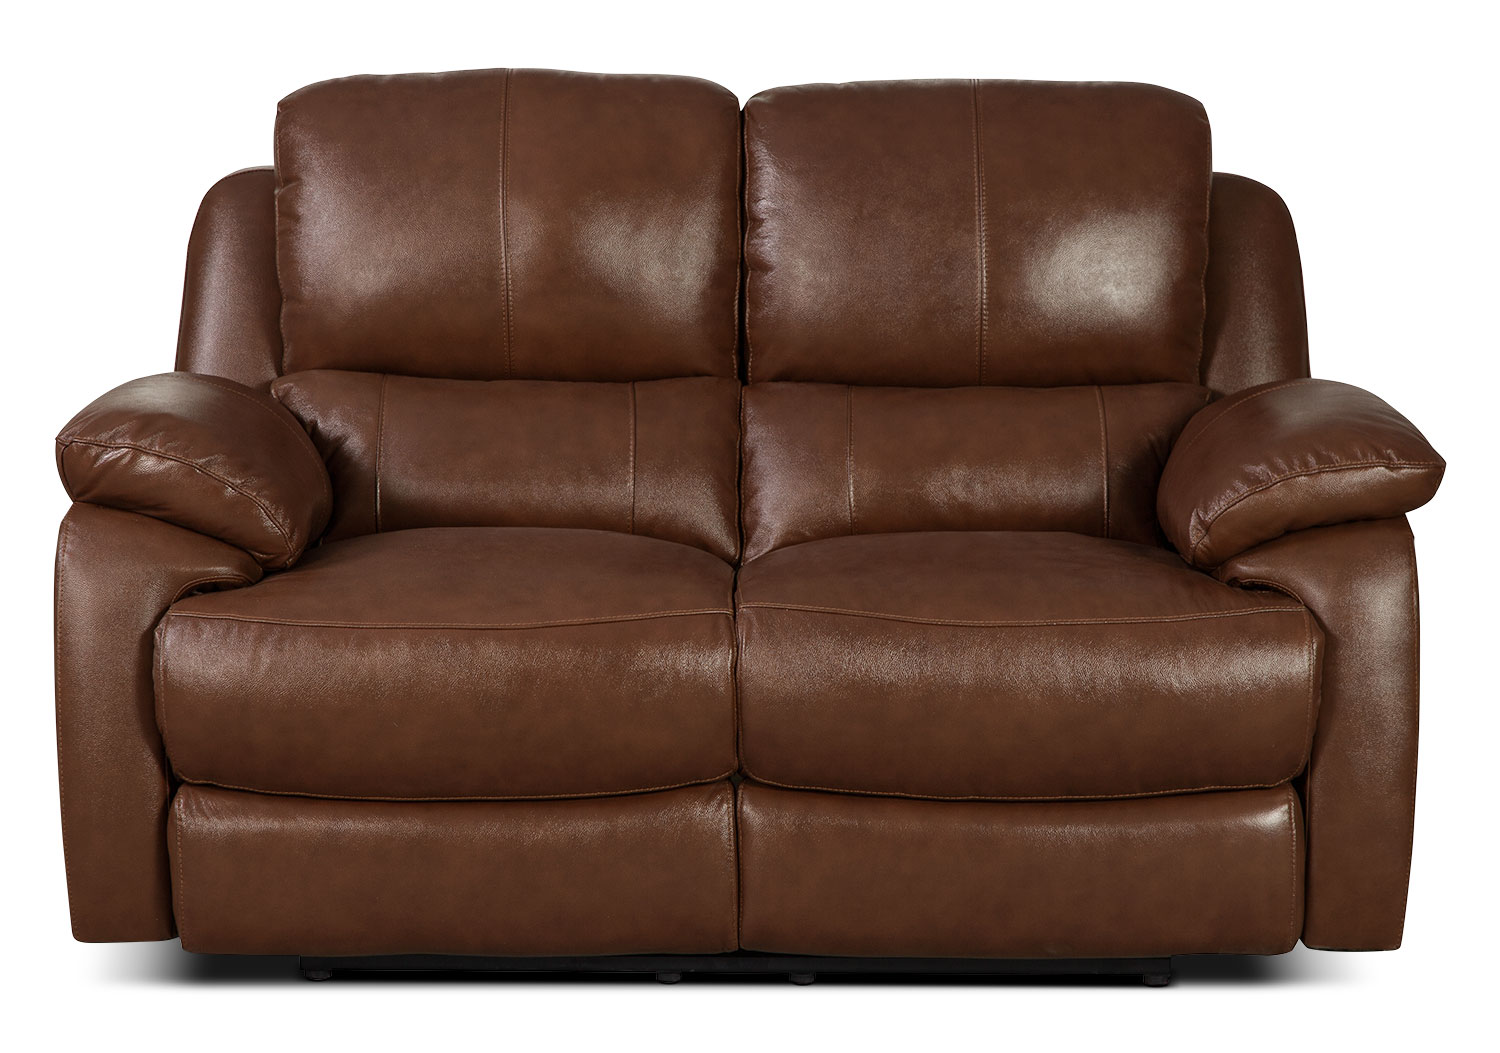 Living Room Furniture - Cairo Genuine Leather Power Reclining Loveseat – Brown